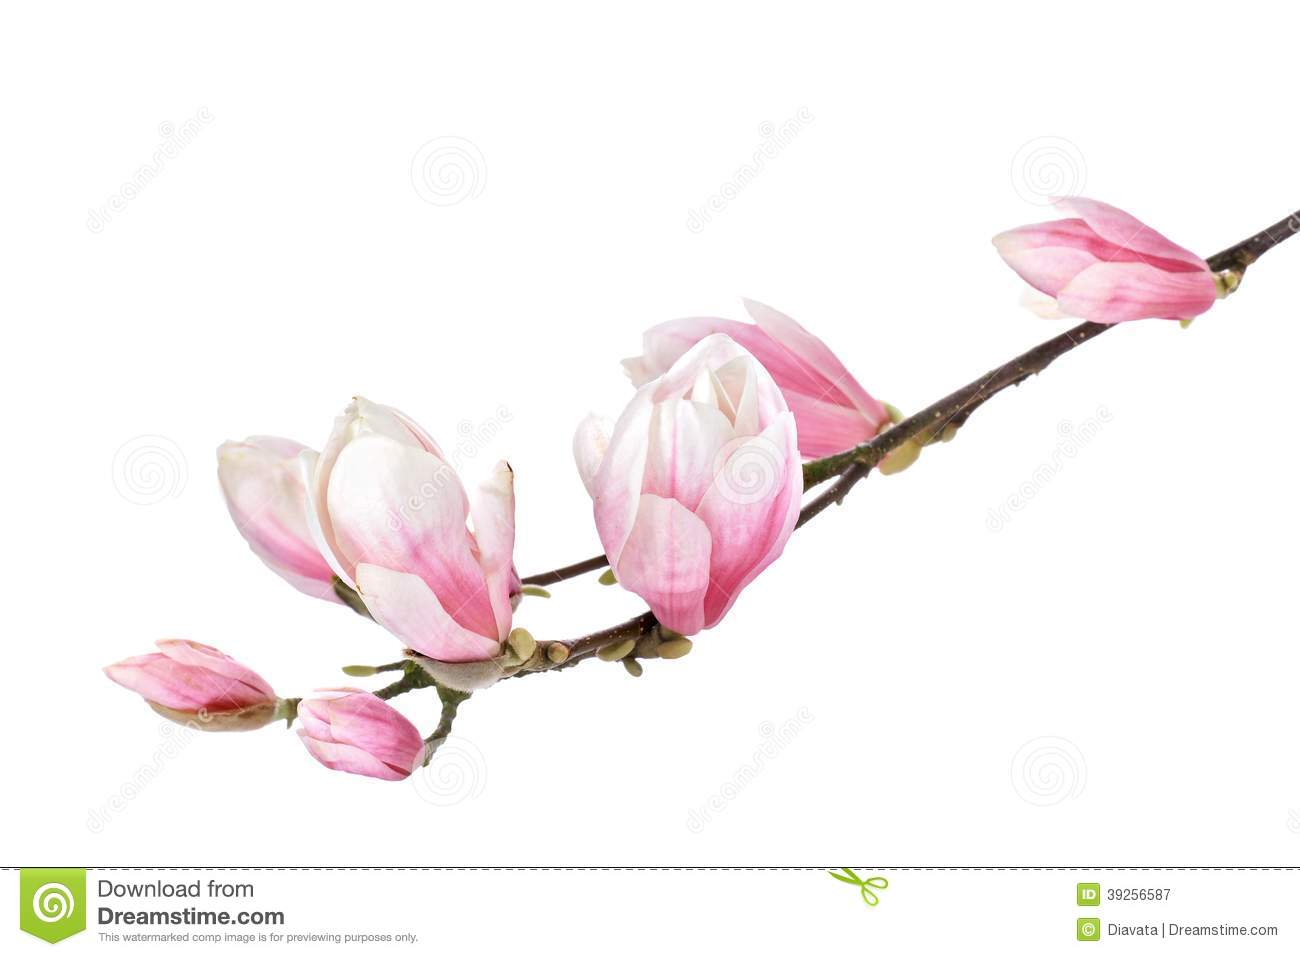 Rose clipart branch #7